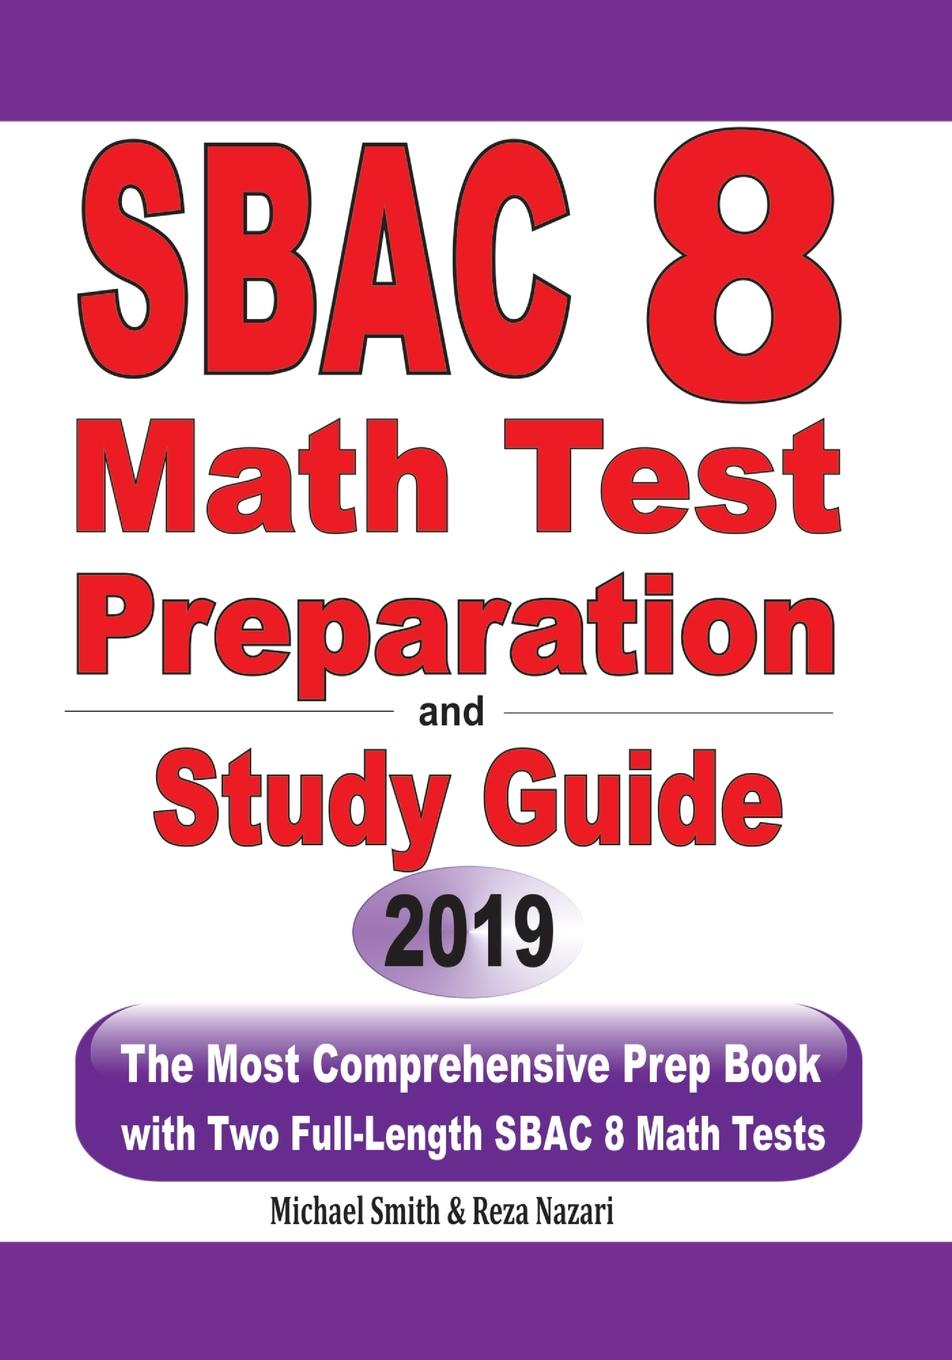 Michael Smith, Reza Nazari SBAC 8 Math Test Preparation and Study Guide. The Most Comprehensive Prep Book with Two Full-Length SBAC Math Tests